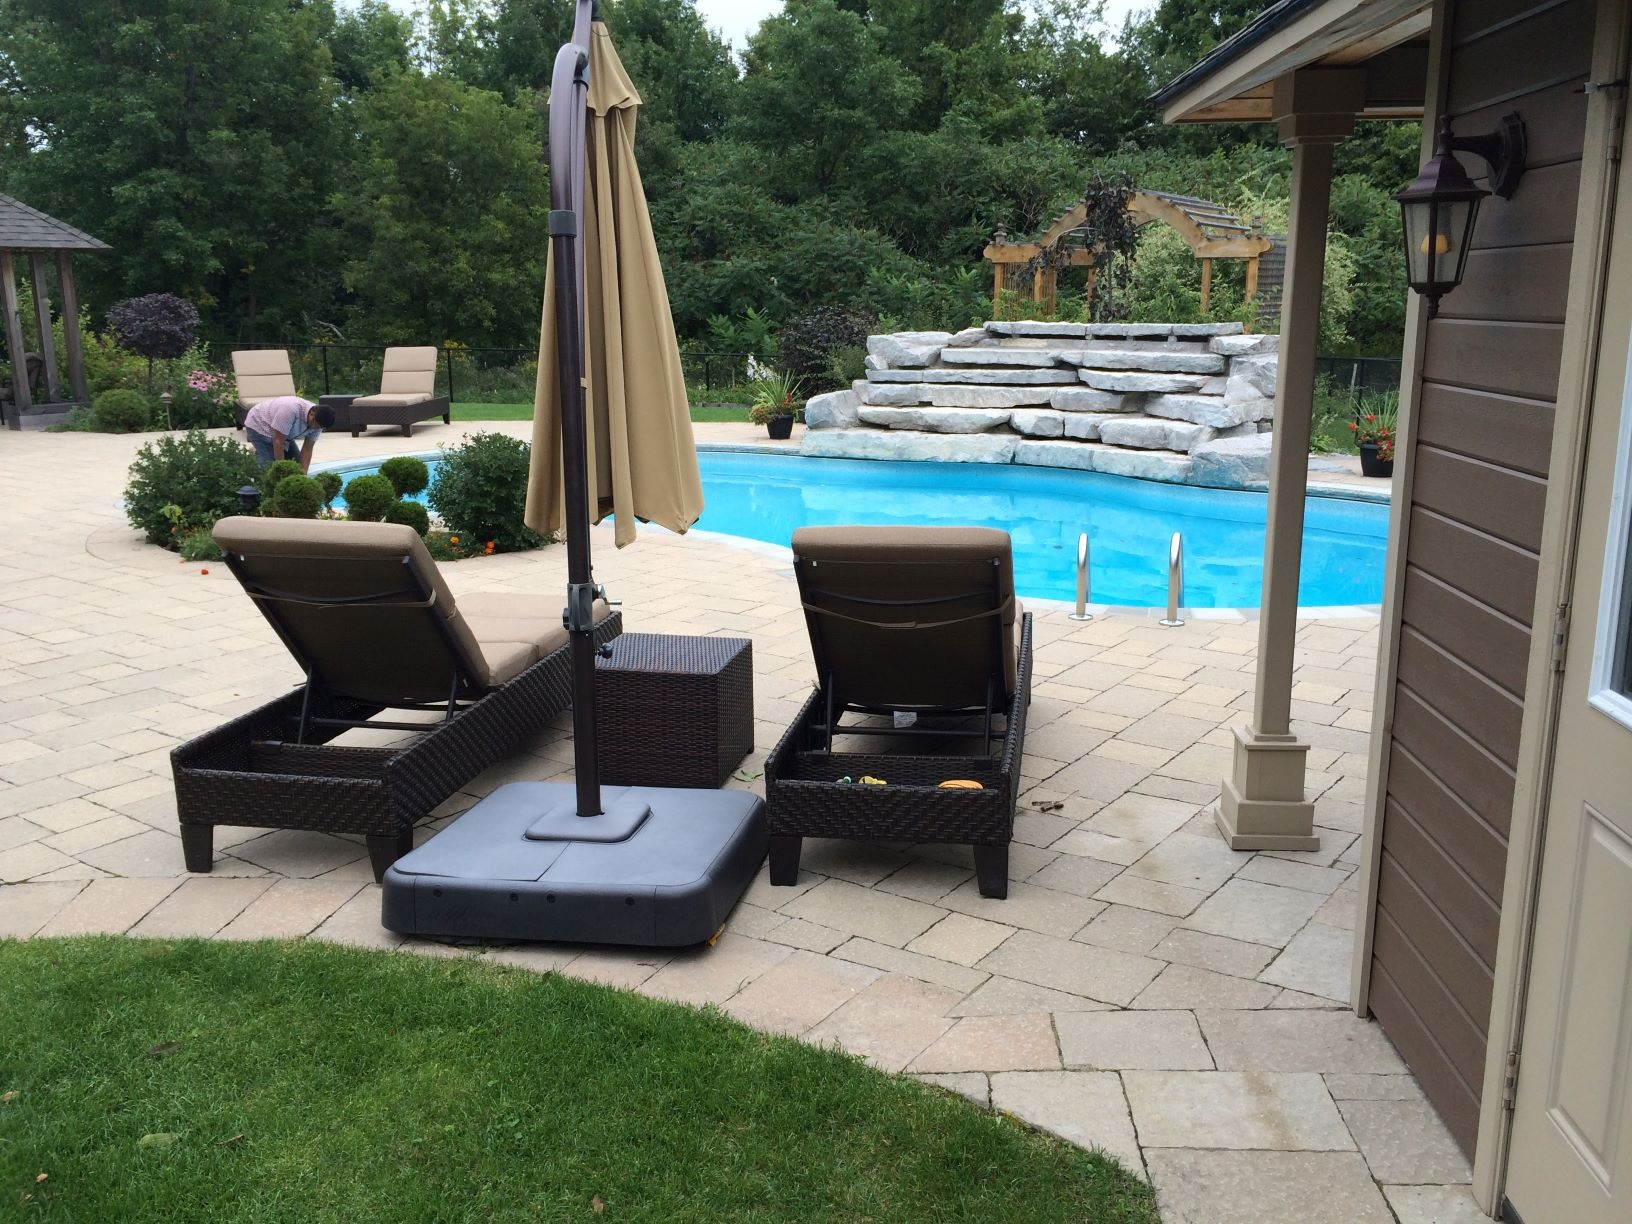 Seaway Pools & Hot Tubs Is A Full Service Swimming Pool Company